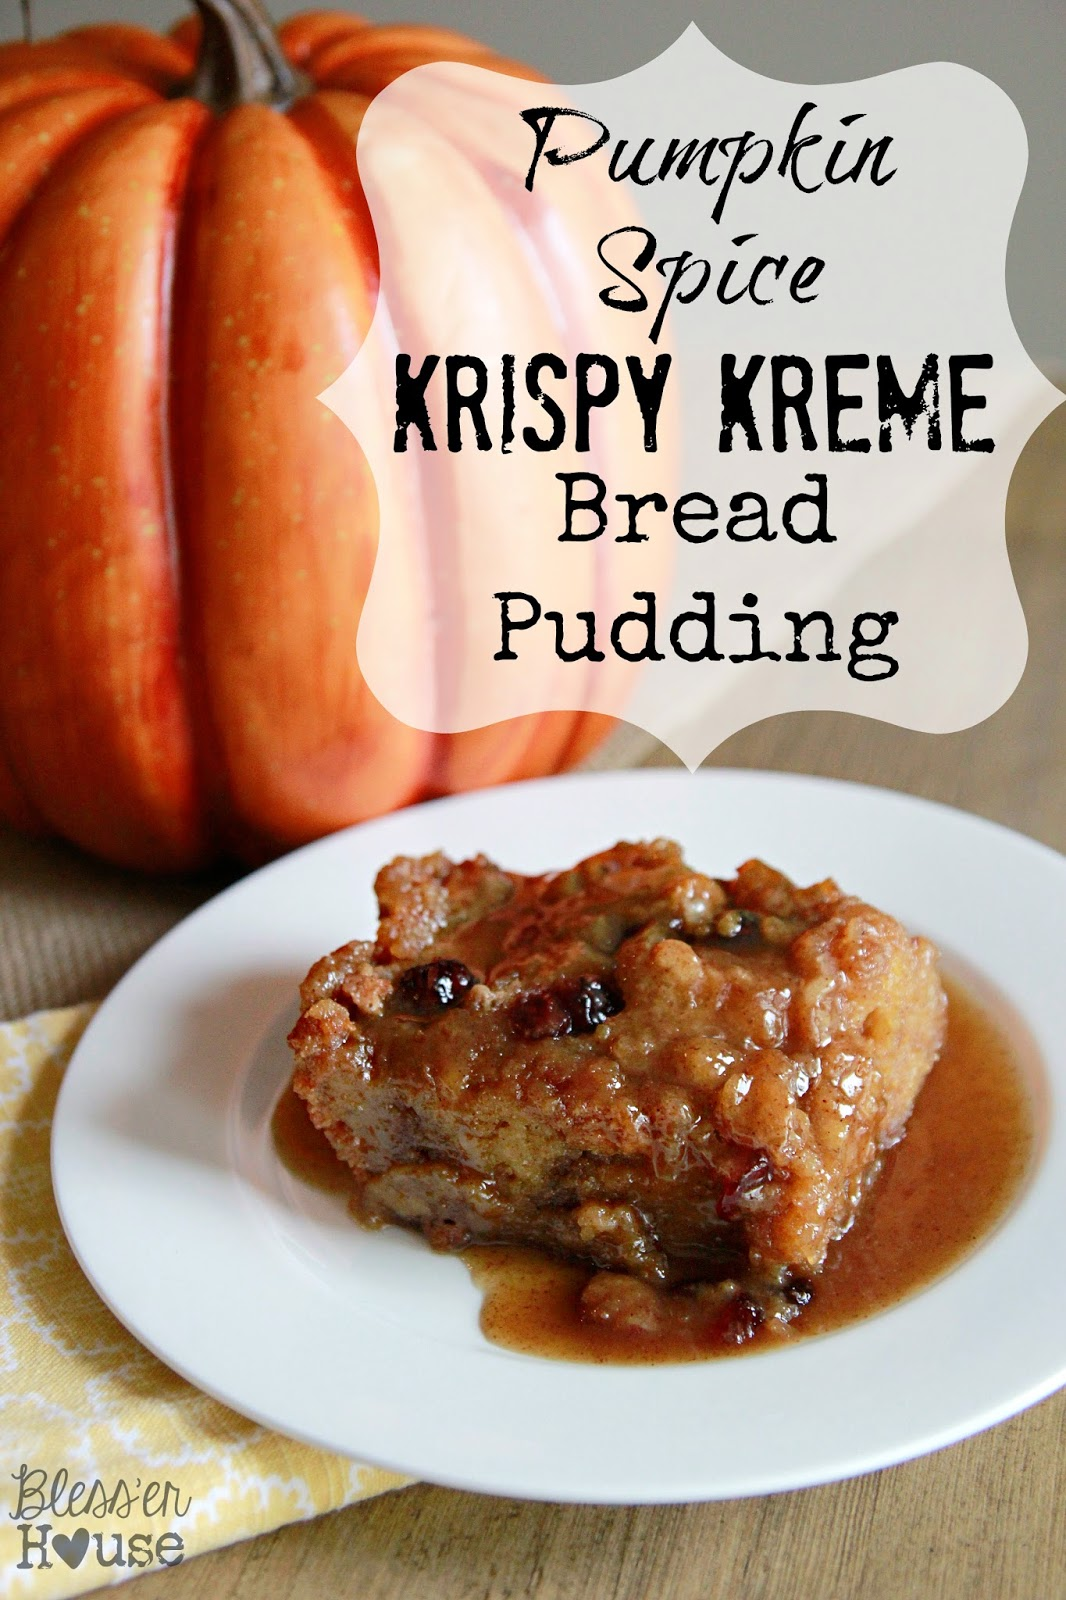 Pumpkin Spice Krispy Kreme Bread Pudding Recipe - Bless'er House